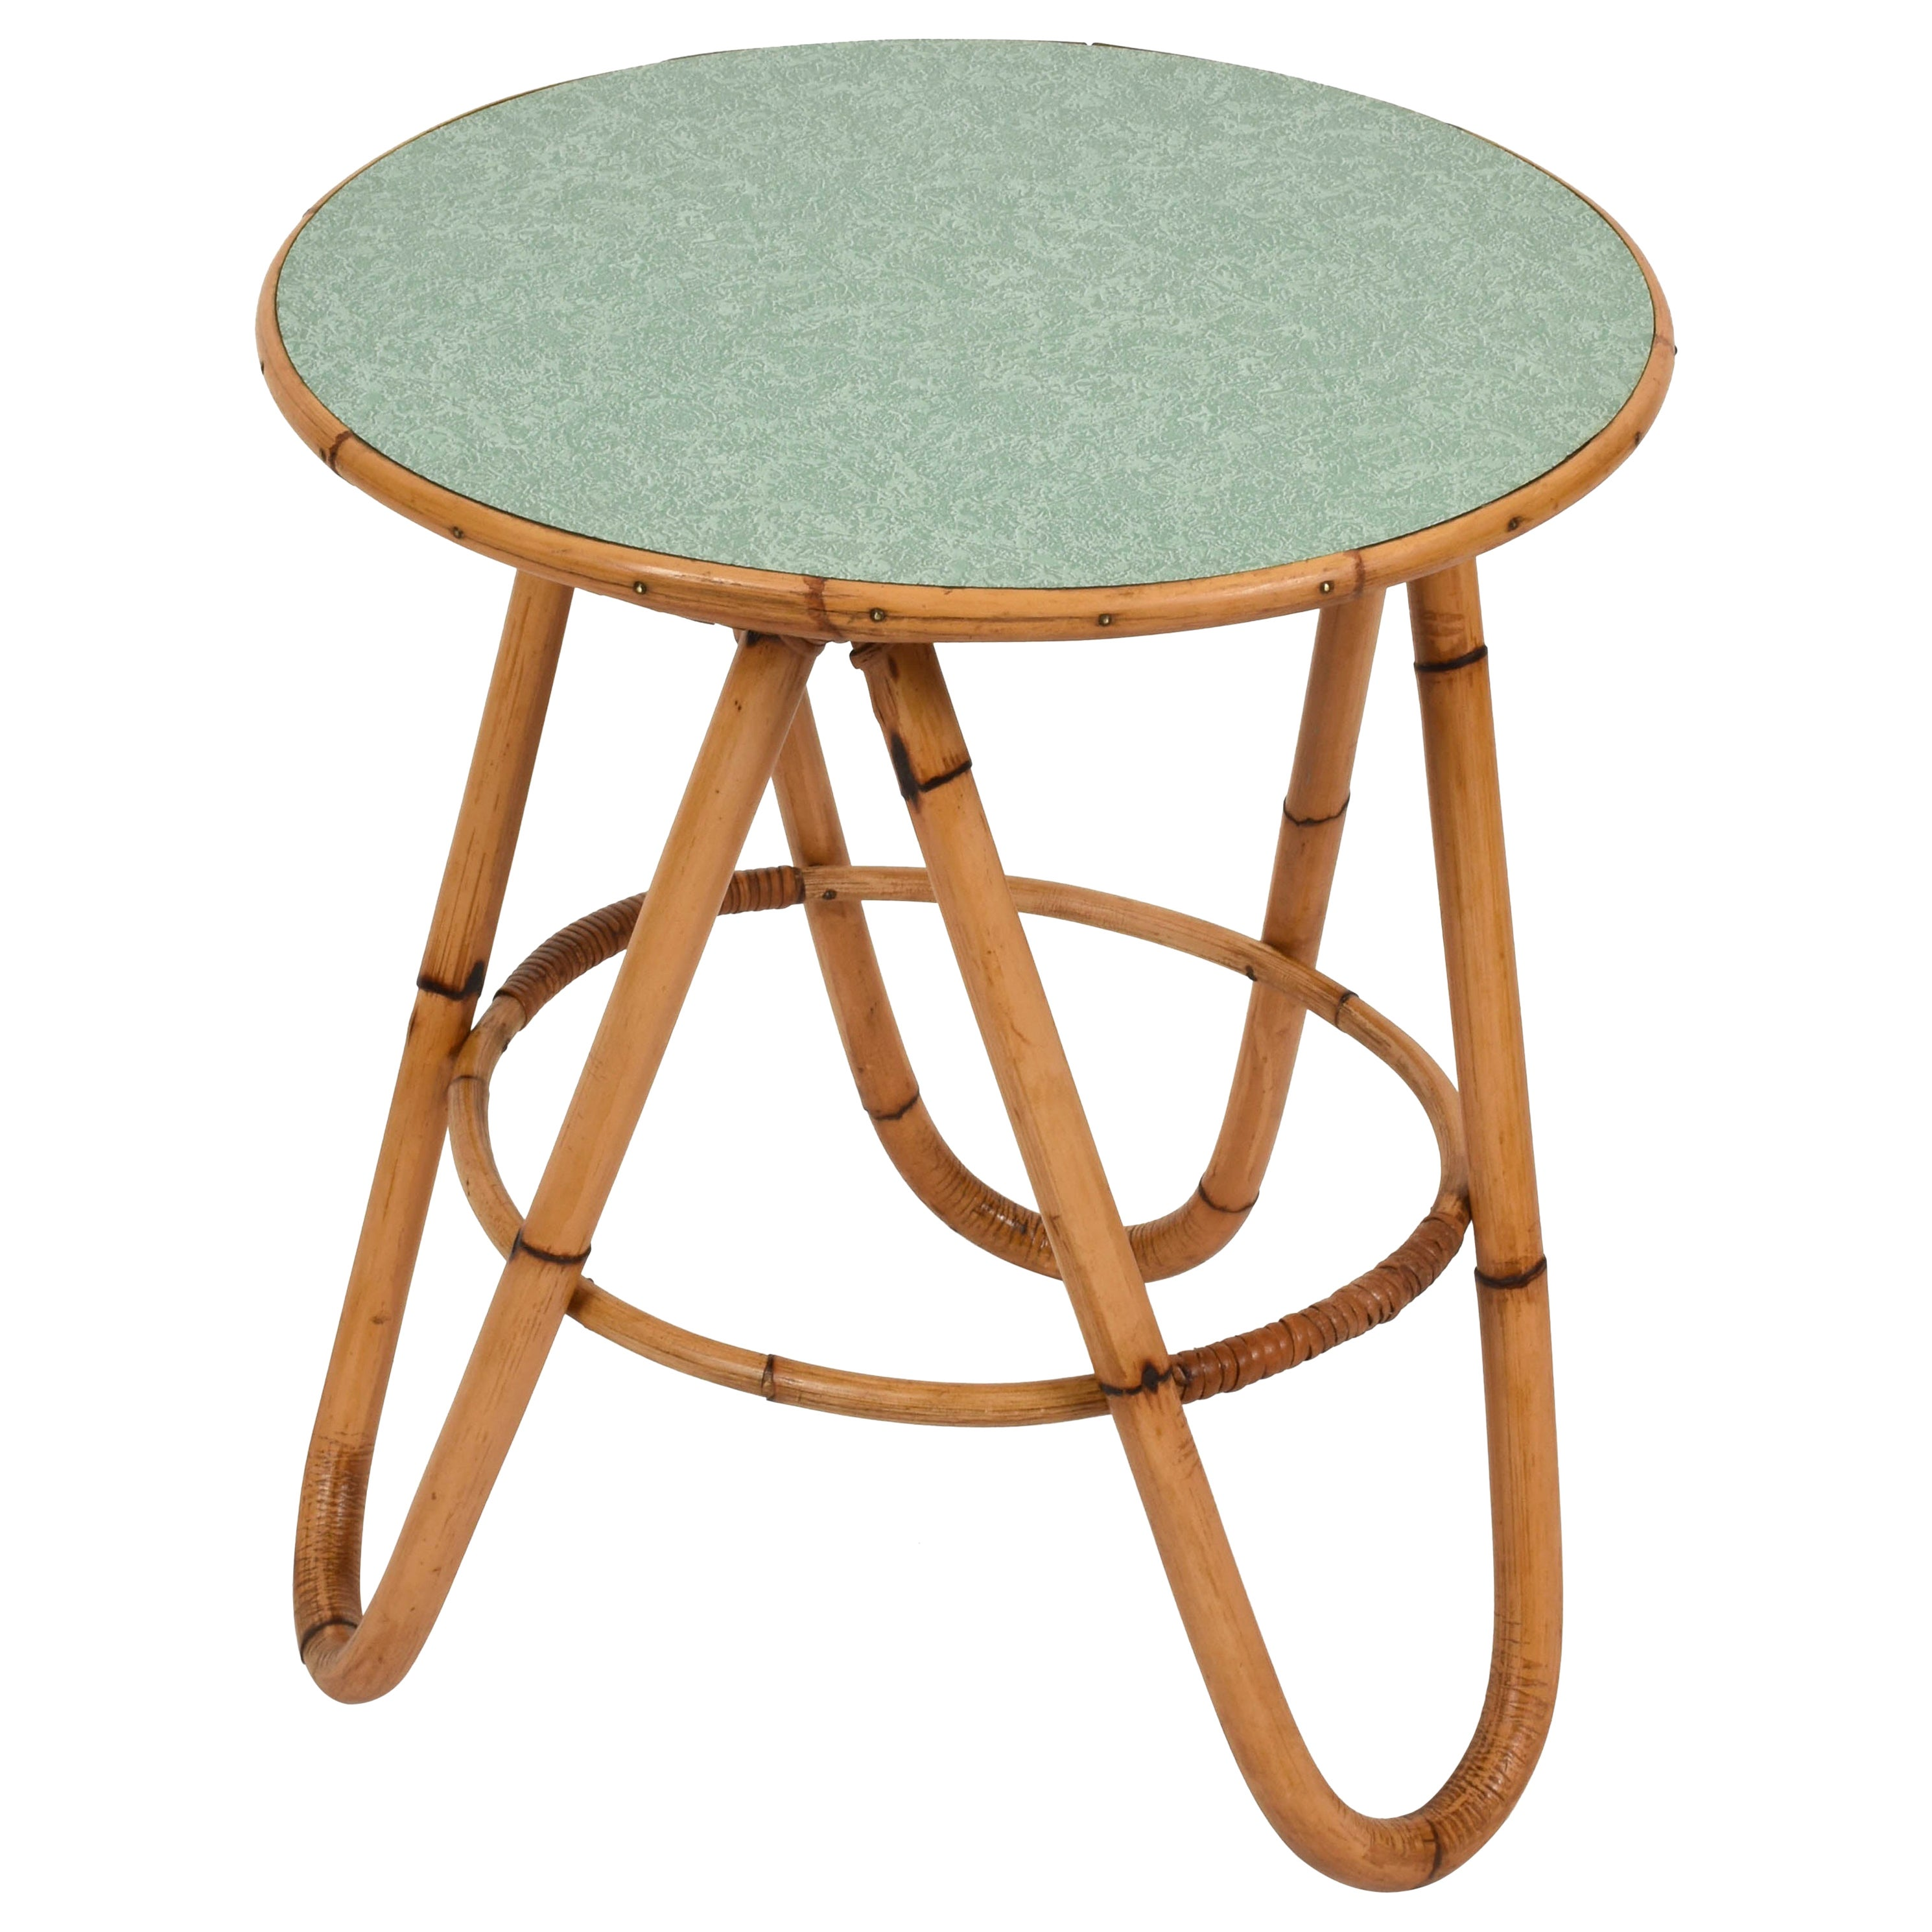 Midcentury Bamboo and Green Formica Round Side Italian Coffee Table, 1960s